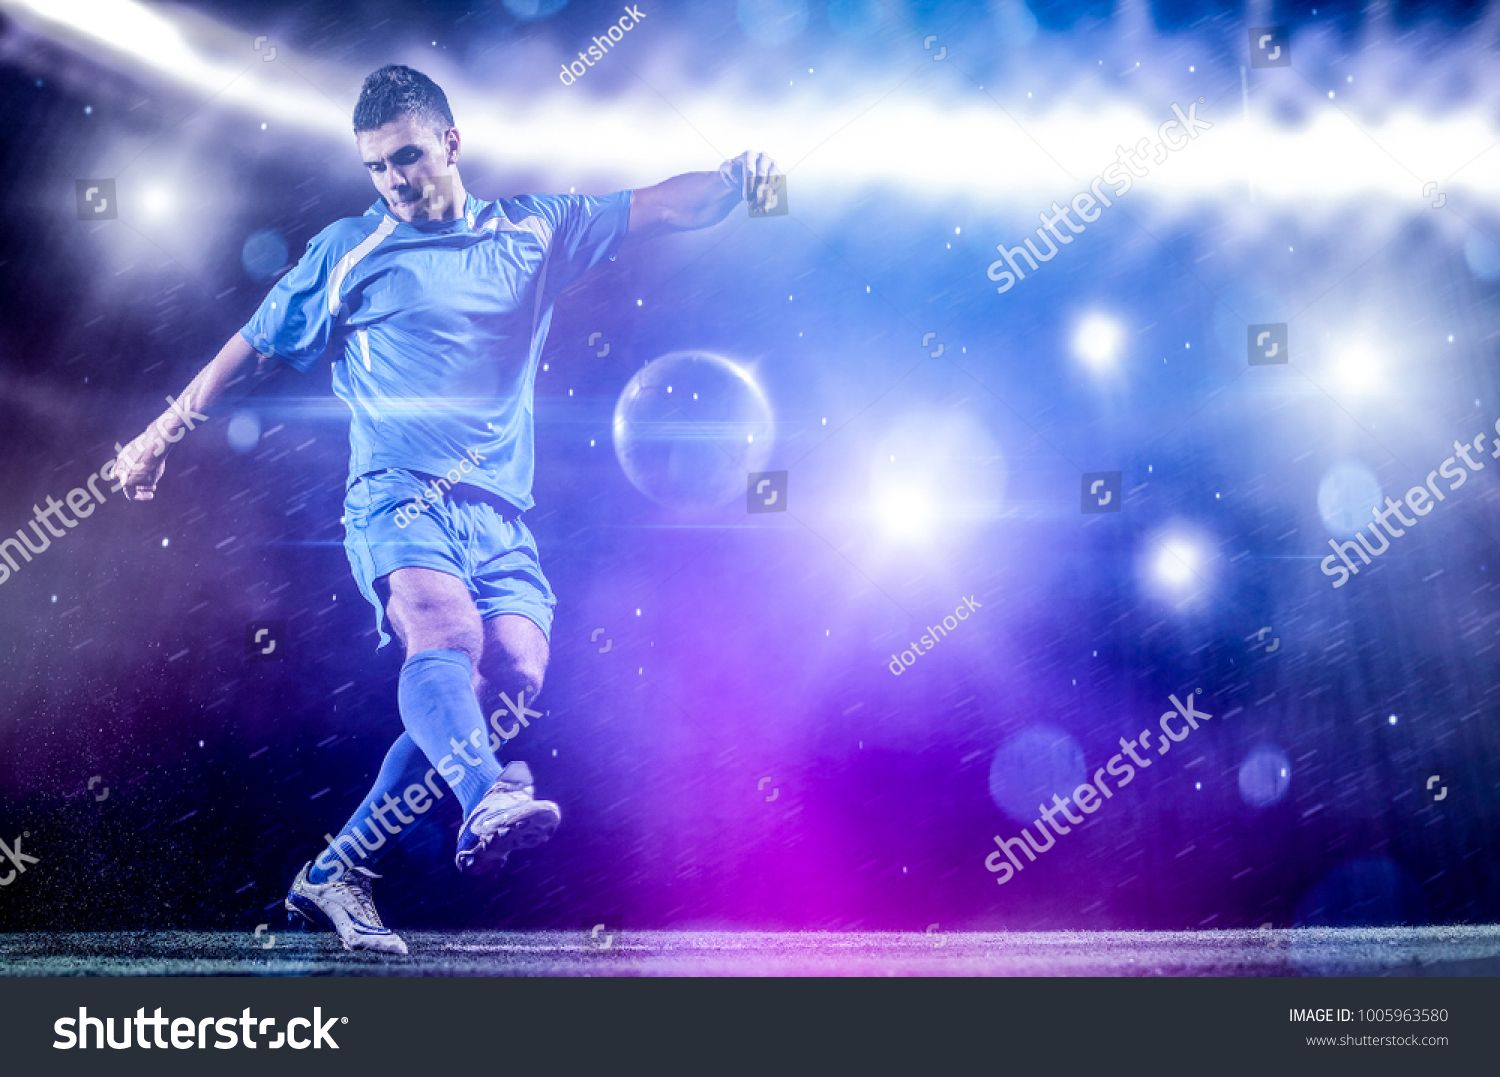 Soccer Player Doing Kick With Ball On Football Stadium Field Isolated On Black Background Soccer Players Football Stadiums Kicks